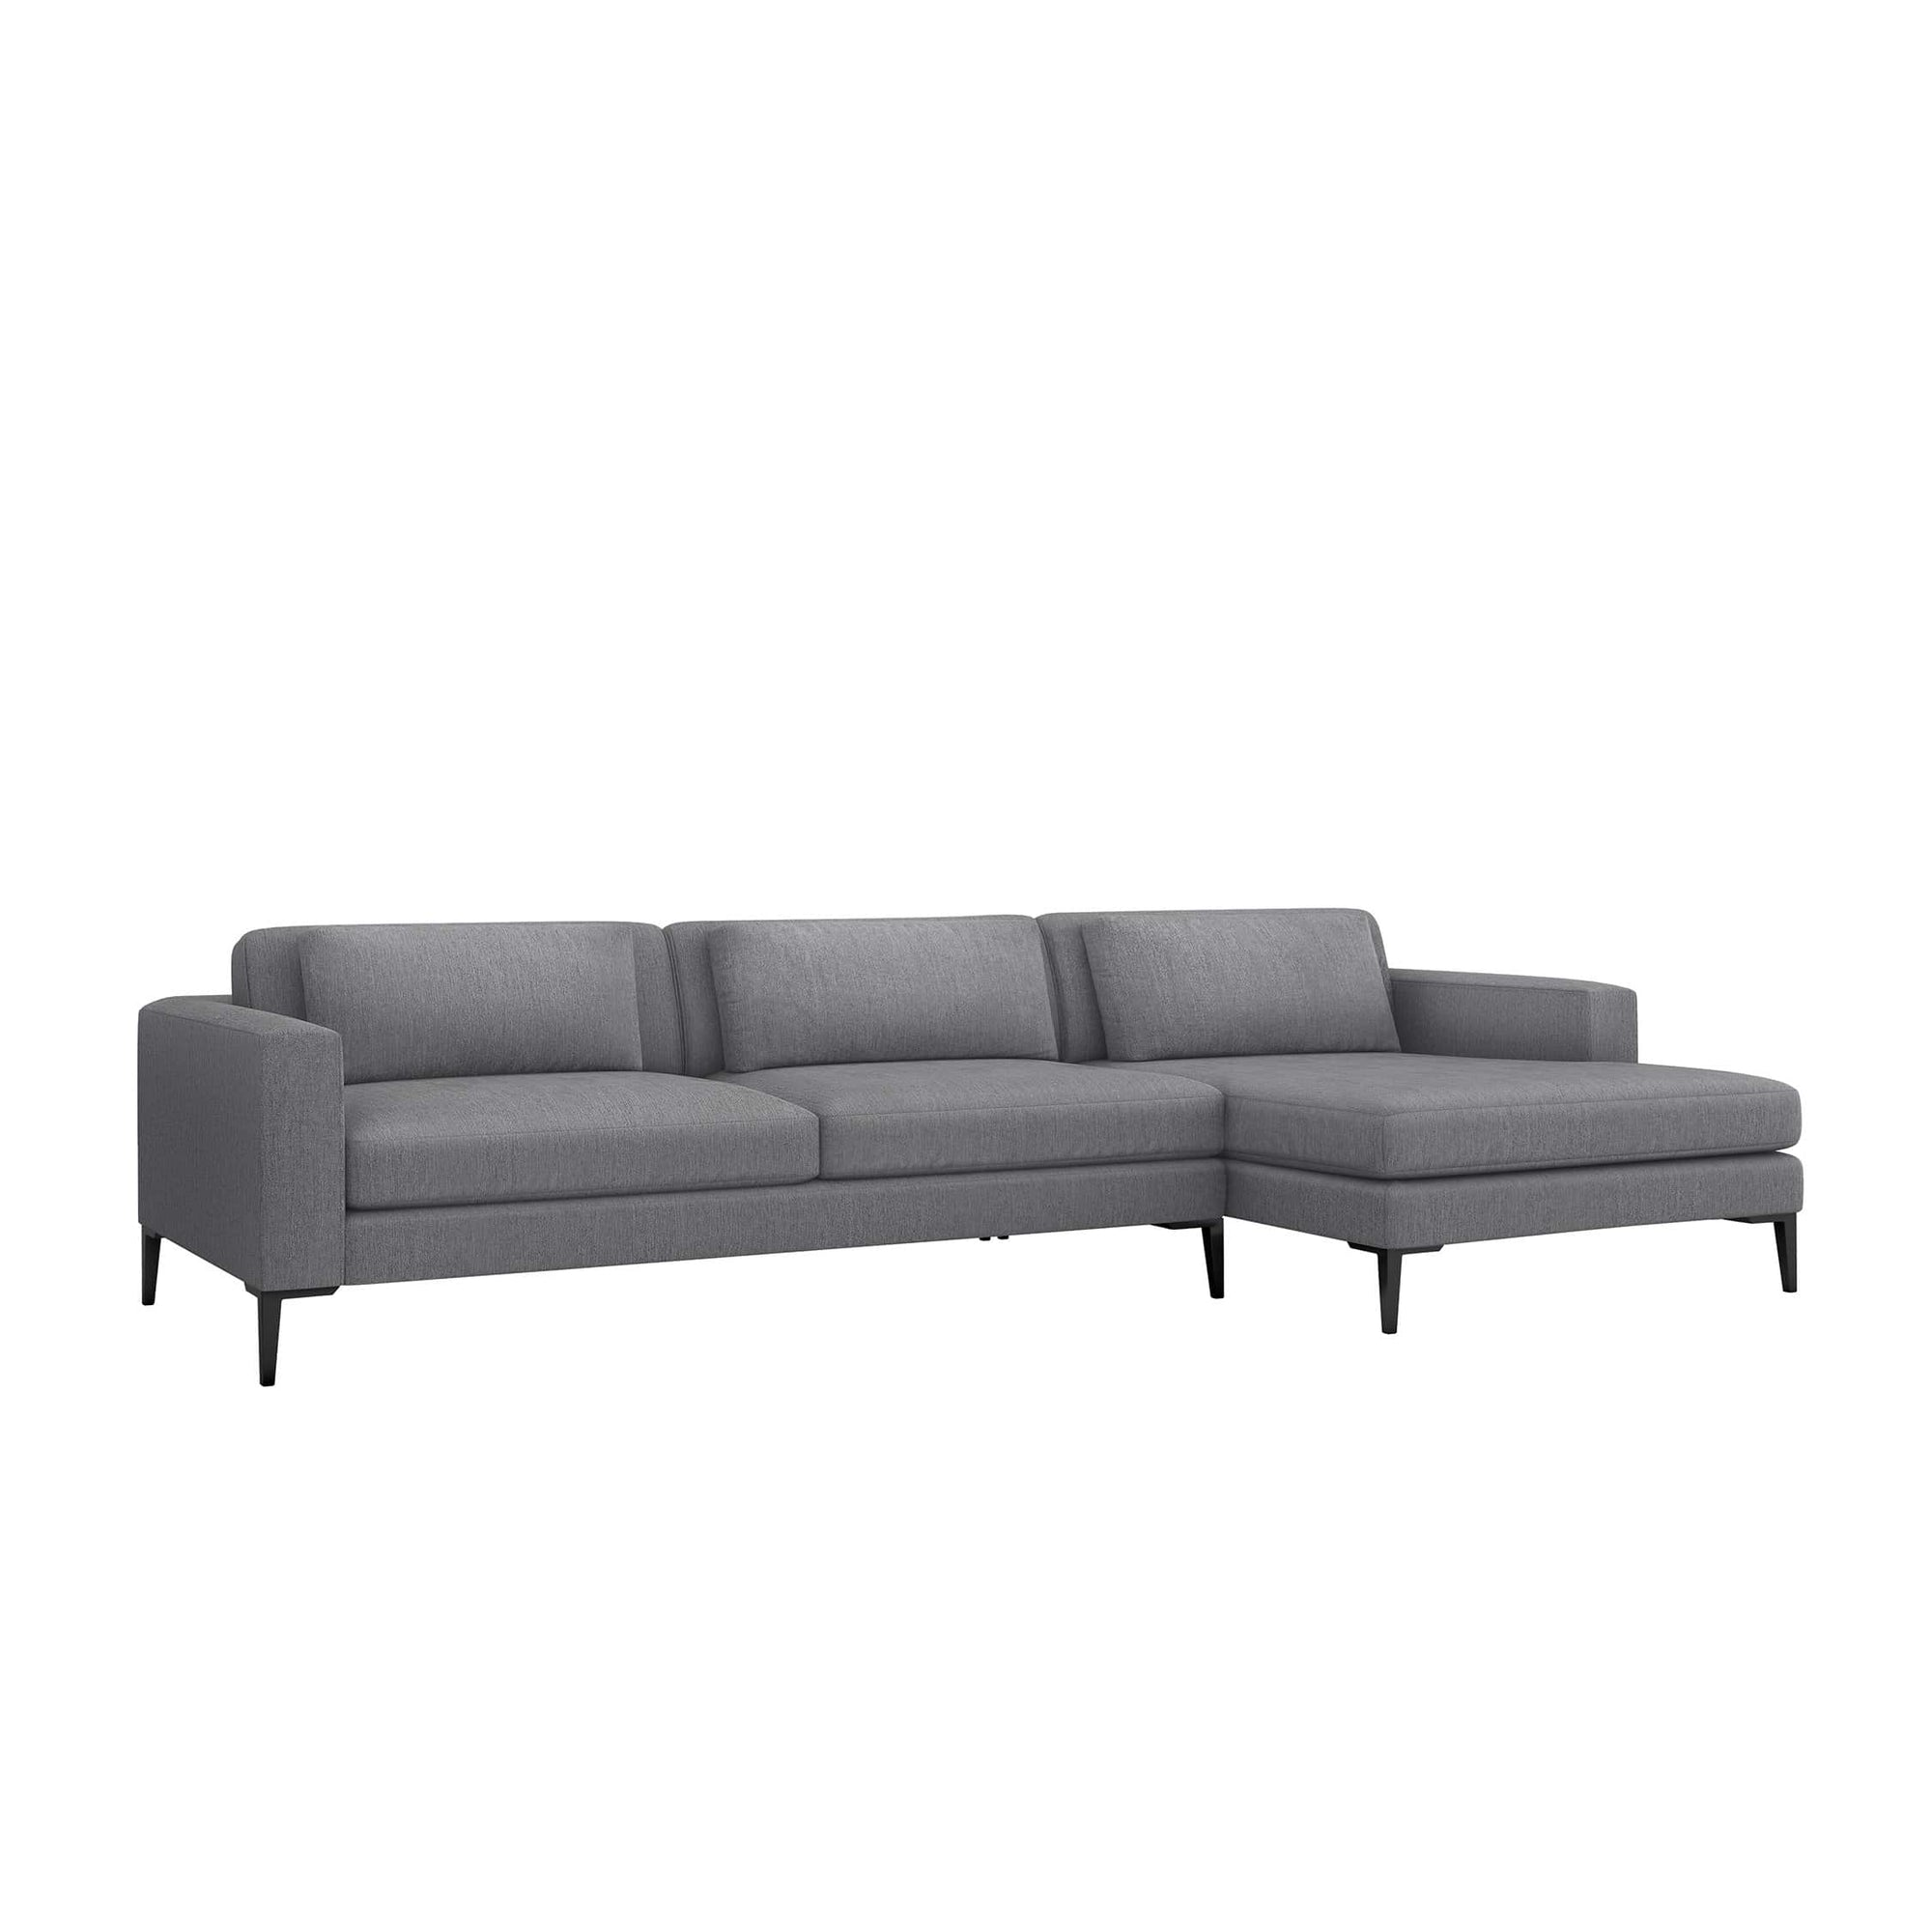 Interlude Home Interlude Home Izzy Right Chaise 2 Piece Sectional - Dark Gray 199014-3